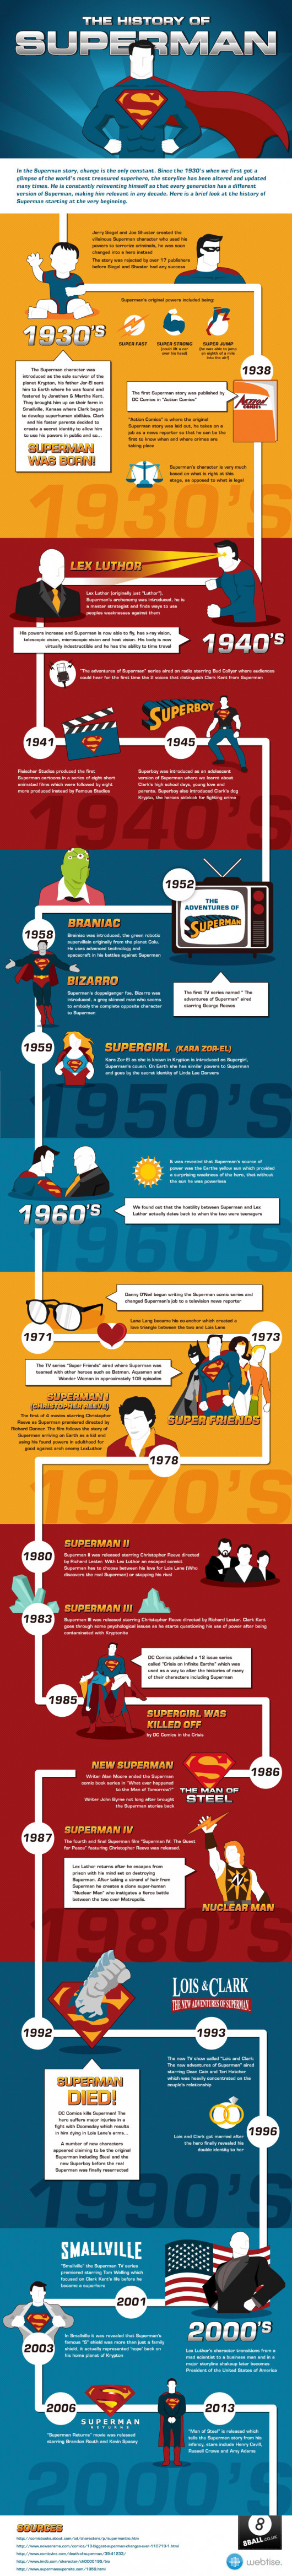 The History of Superman